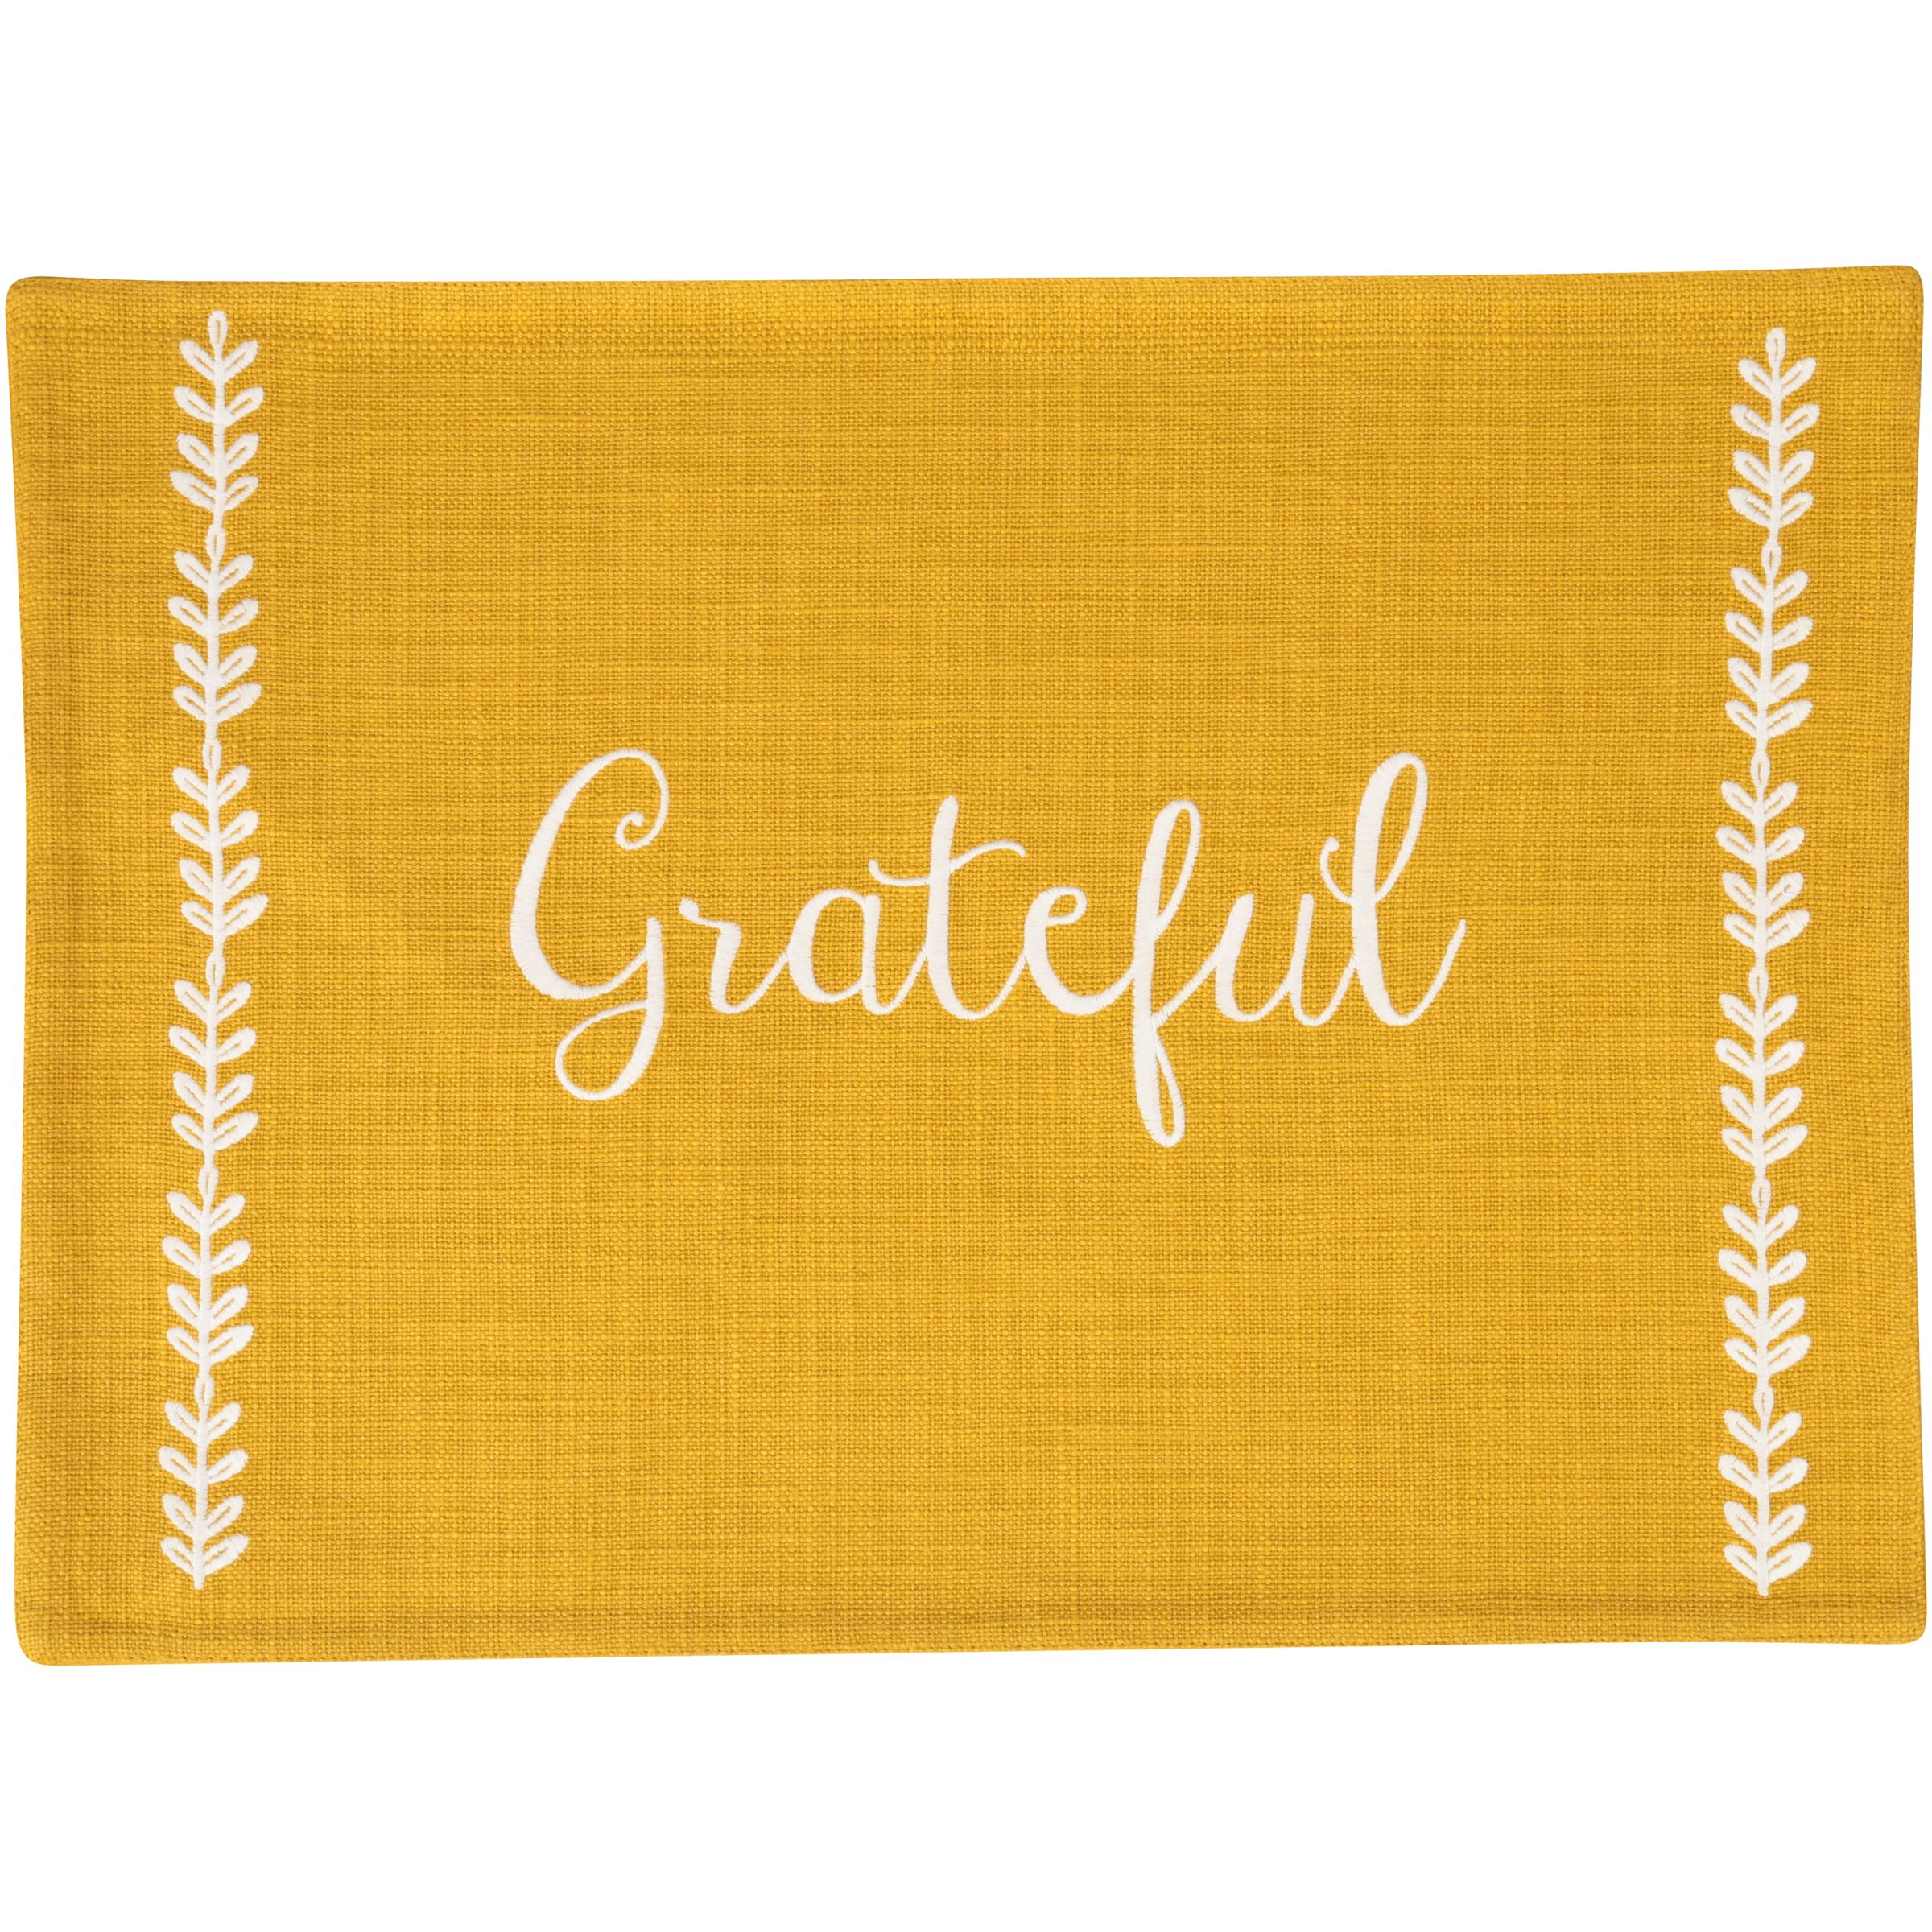 "Mainstays Holiday Grateful Gold Embroidered Placemats, 14"" x 19\ by Wal-Mart Stores, Inc."